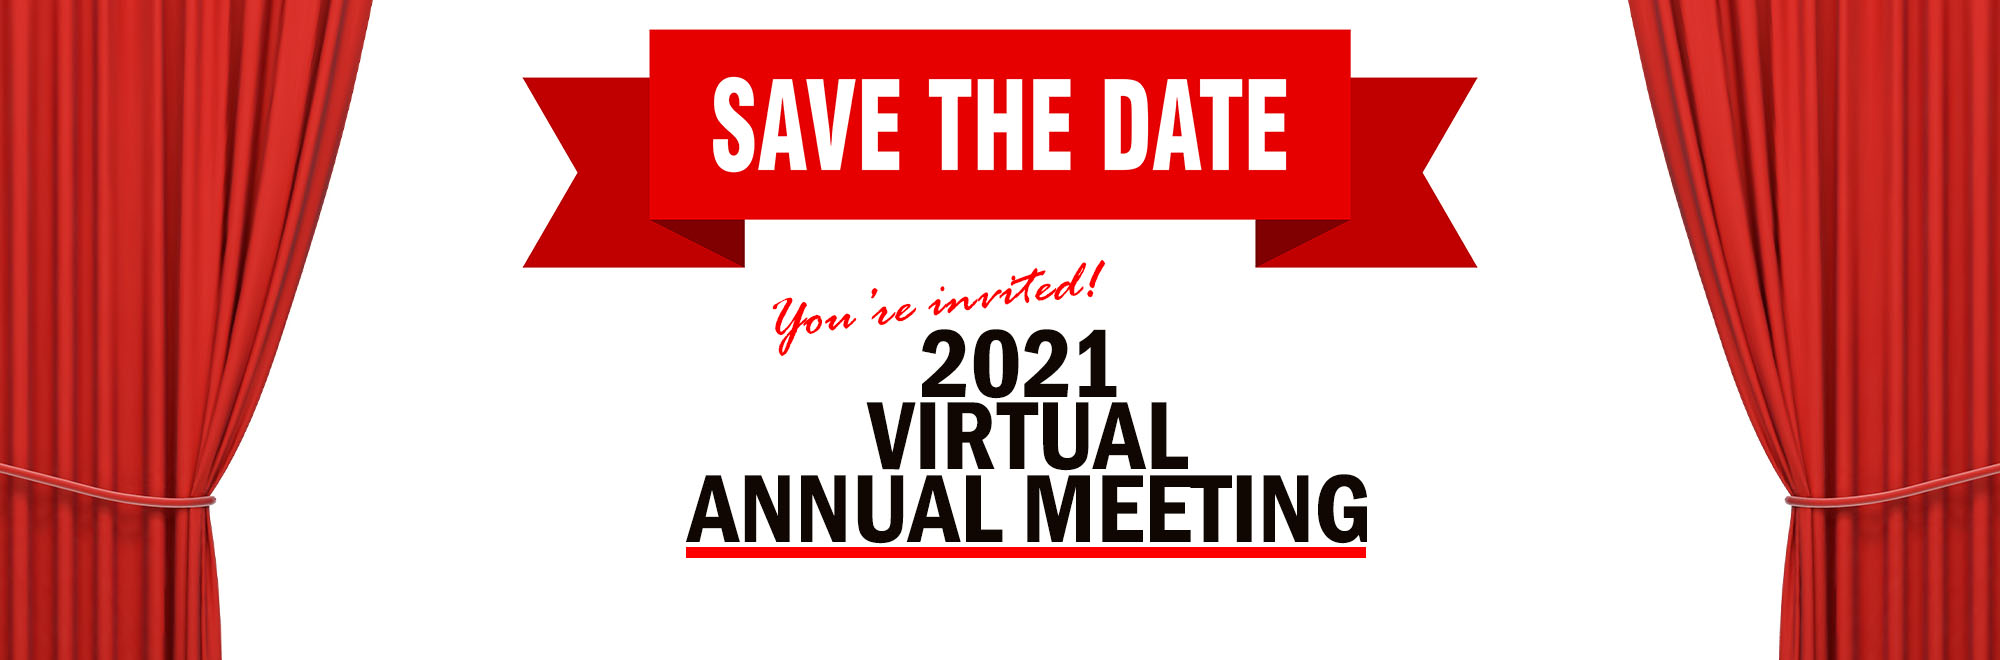 Save the date, you're invited. 2021 Virtual annual meeting